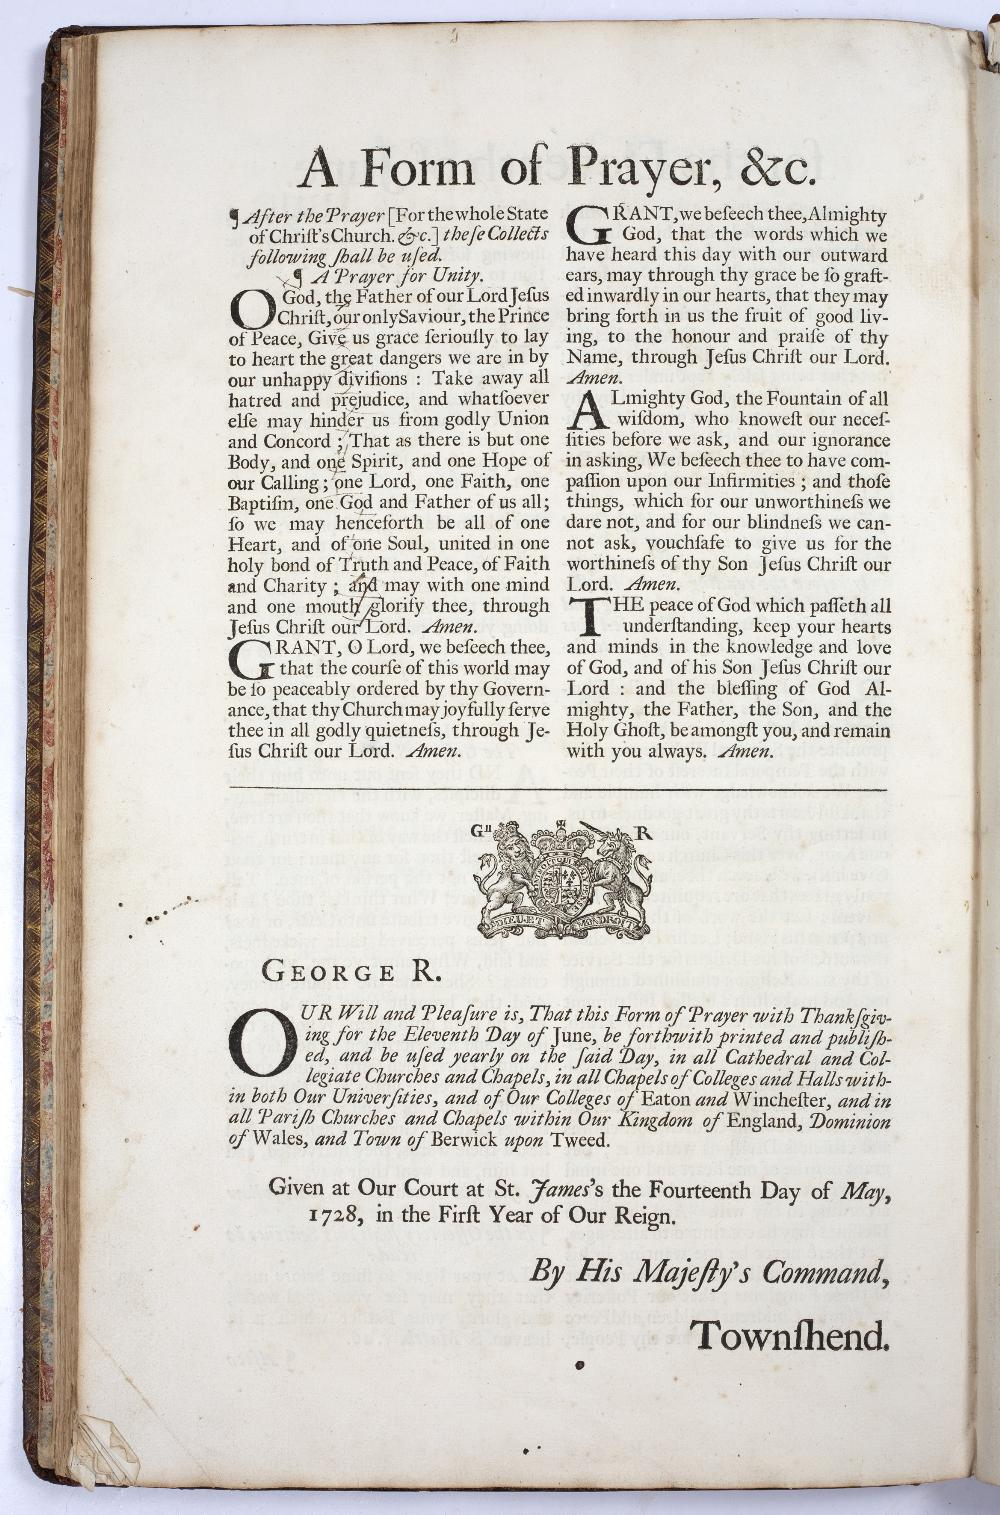 AN 18TH CENTURY PRAYER BOOK containing The Collects, Epistles and Gospels, to be used throughout the